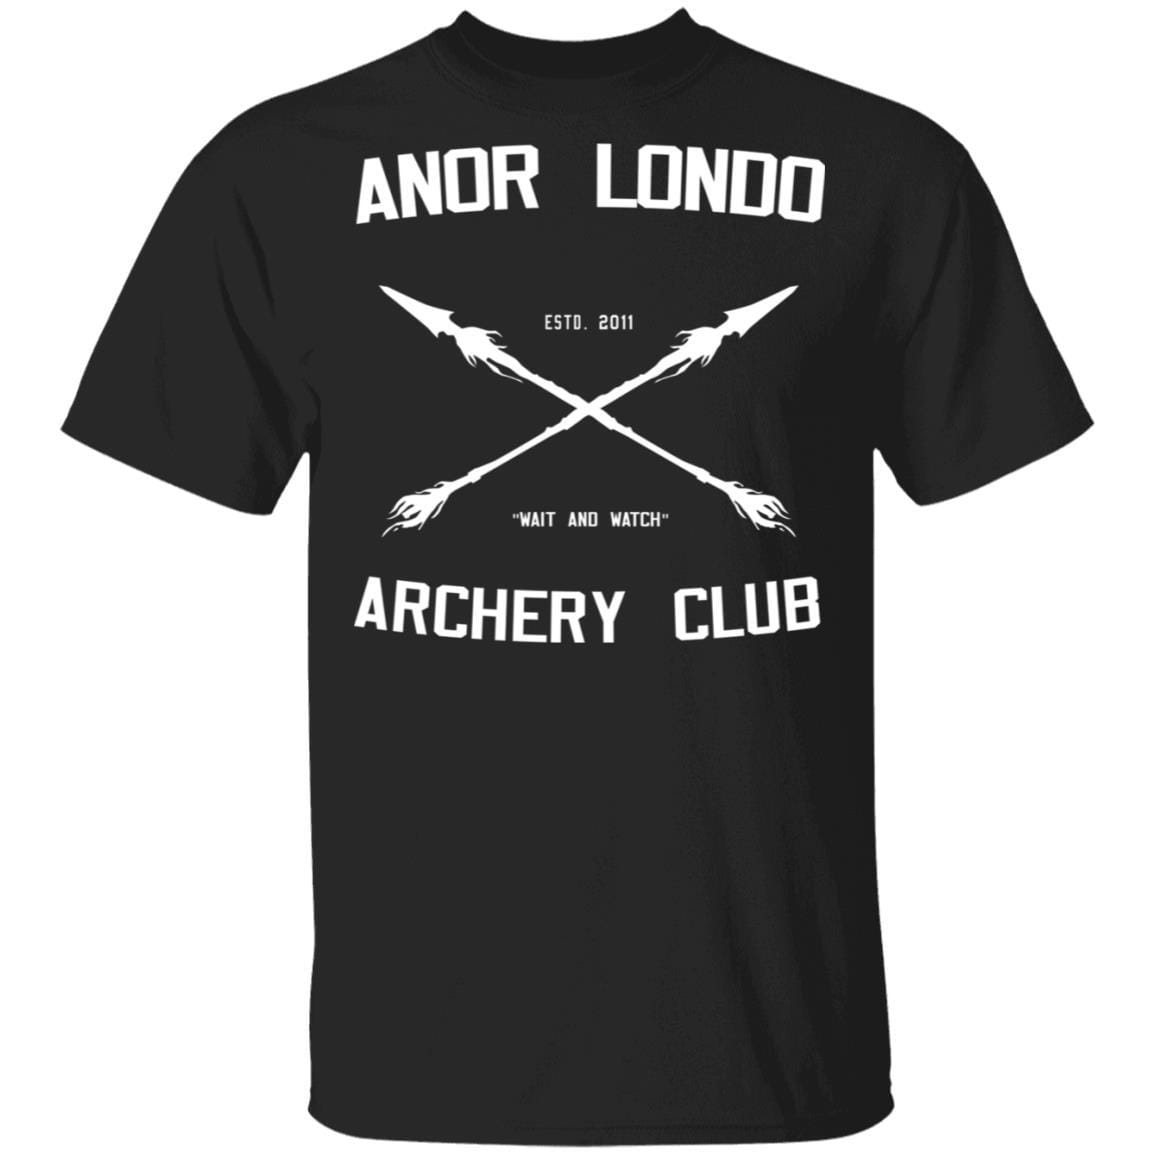 Anor Londo Archery Club 2011 T-Shirts, Hoodies 1049-9953-88767425-48144 - Tee Ript